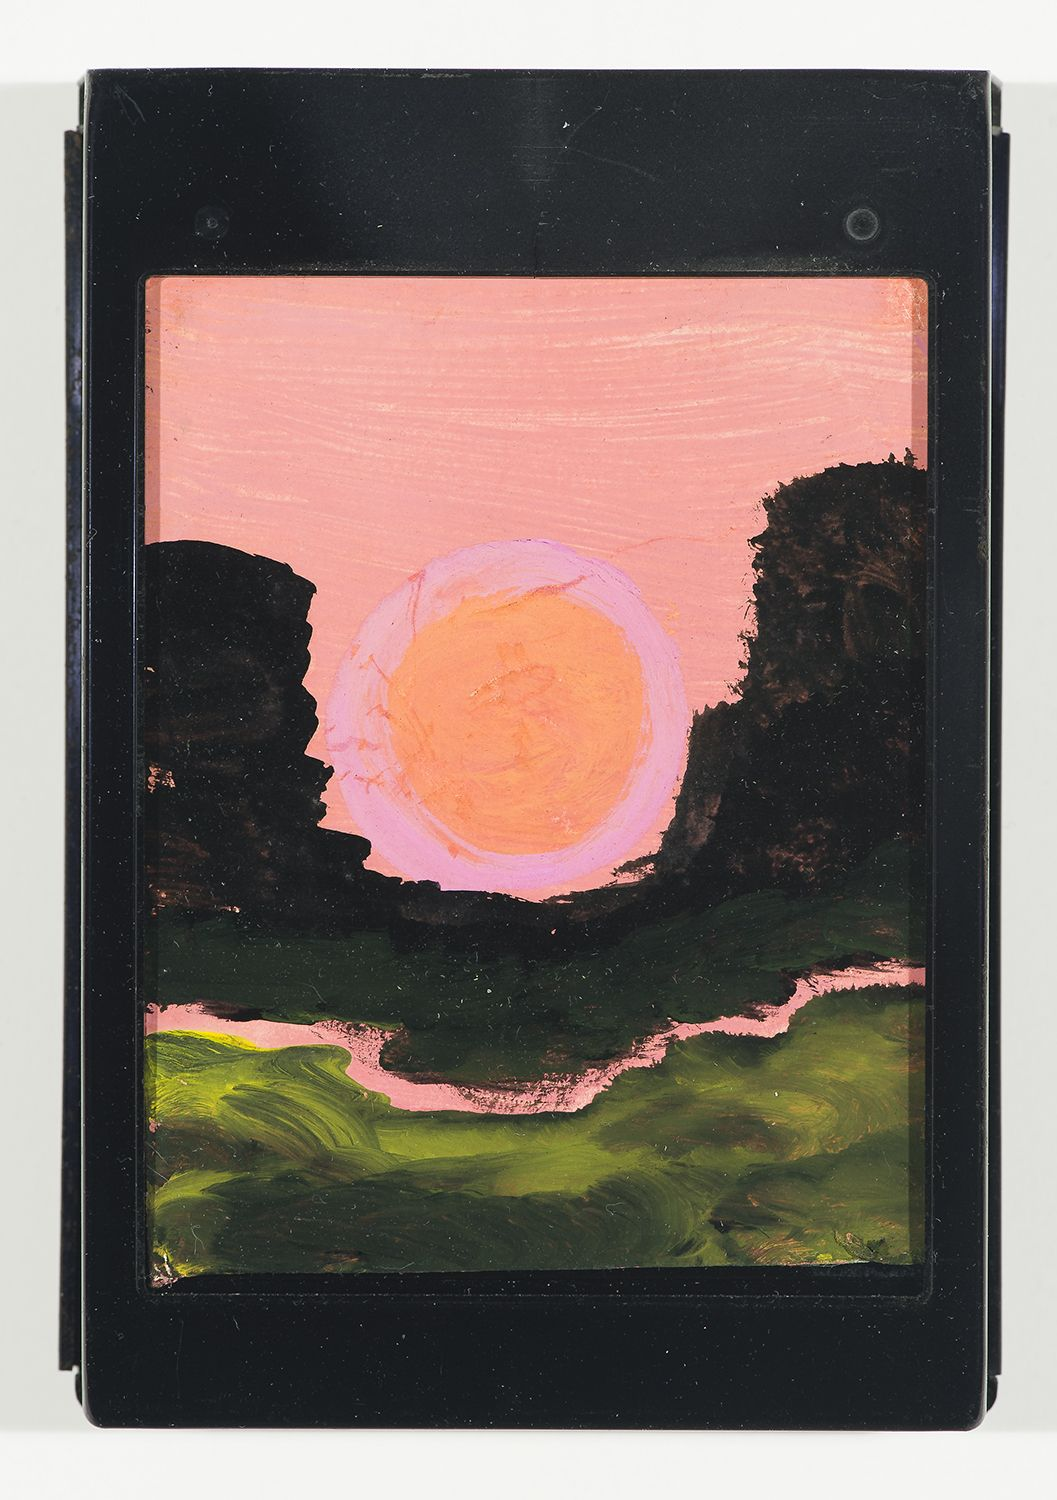 Frank Walter, Landscape, Pink Sky with Sunrise at the Saddle, watercolor and oil on polaroid box cover w/ metal cartridge, 5 1/4 x 3 3/4 inches,